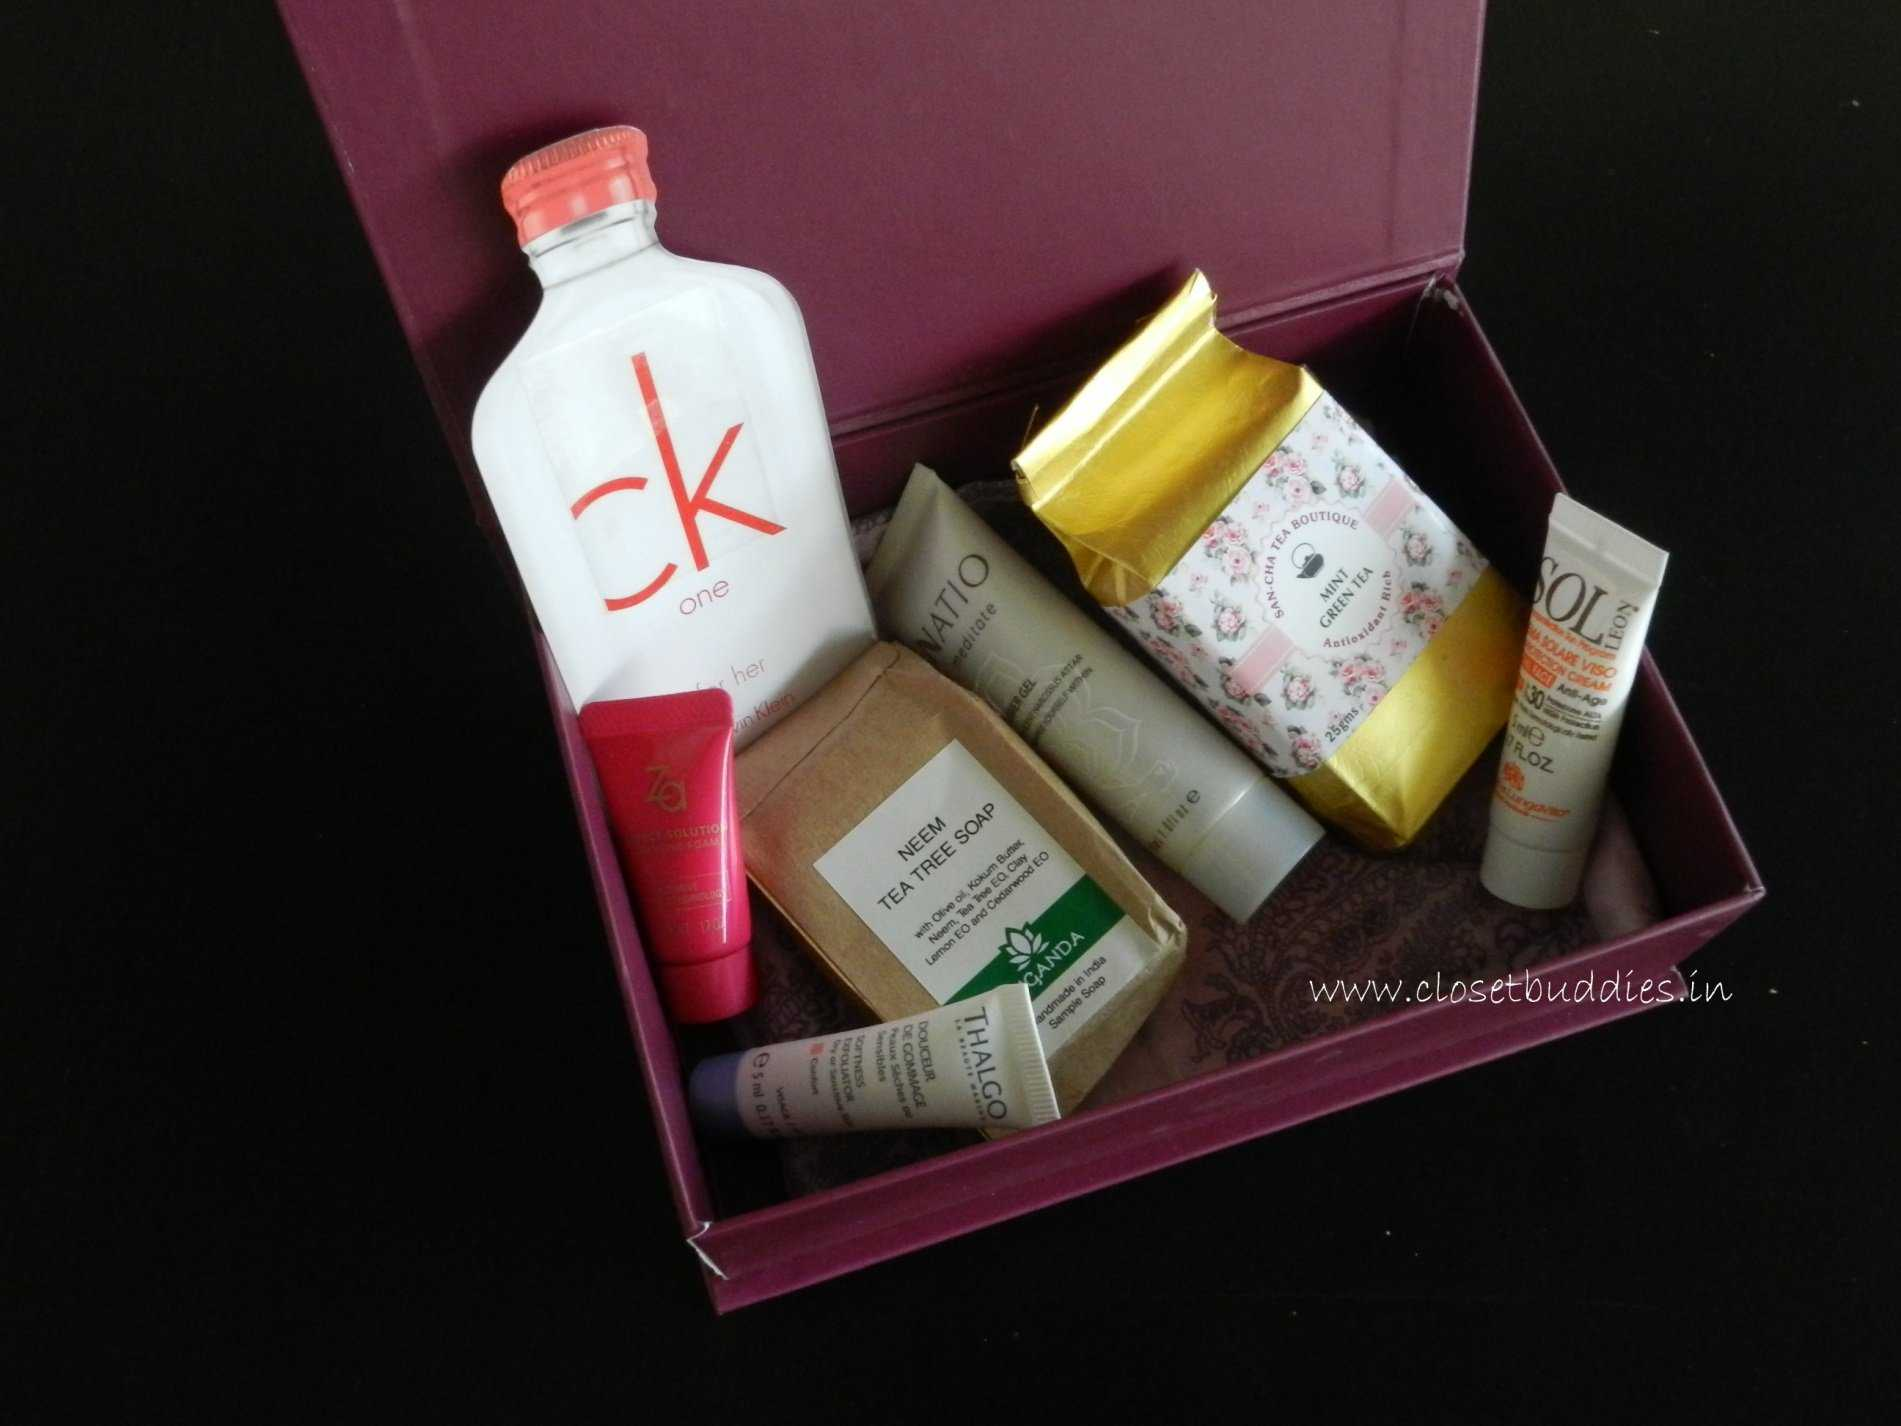 box open - My Envy Box- November 2014 Review